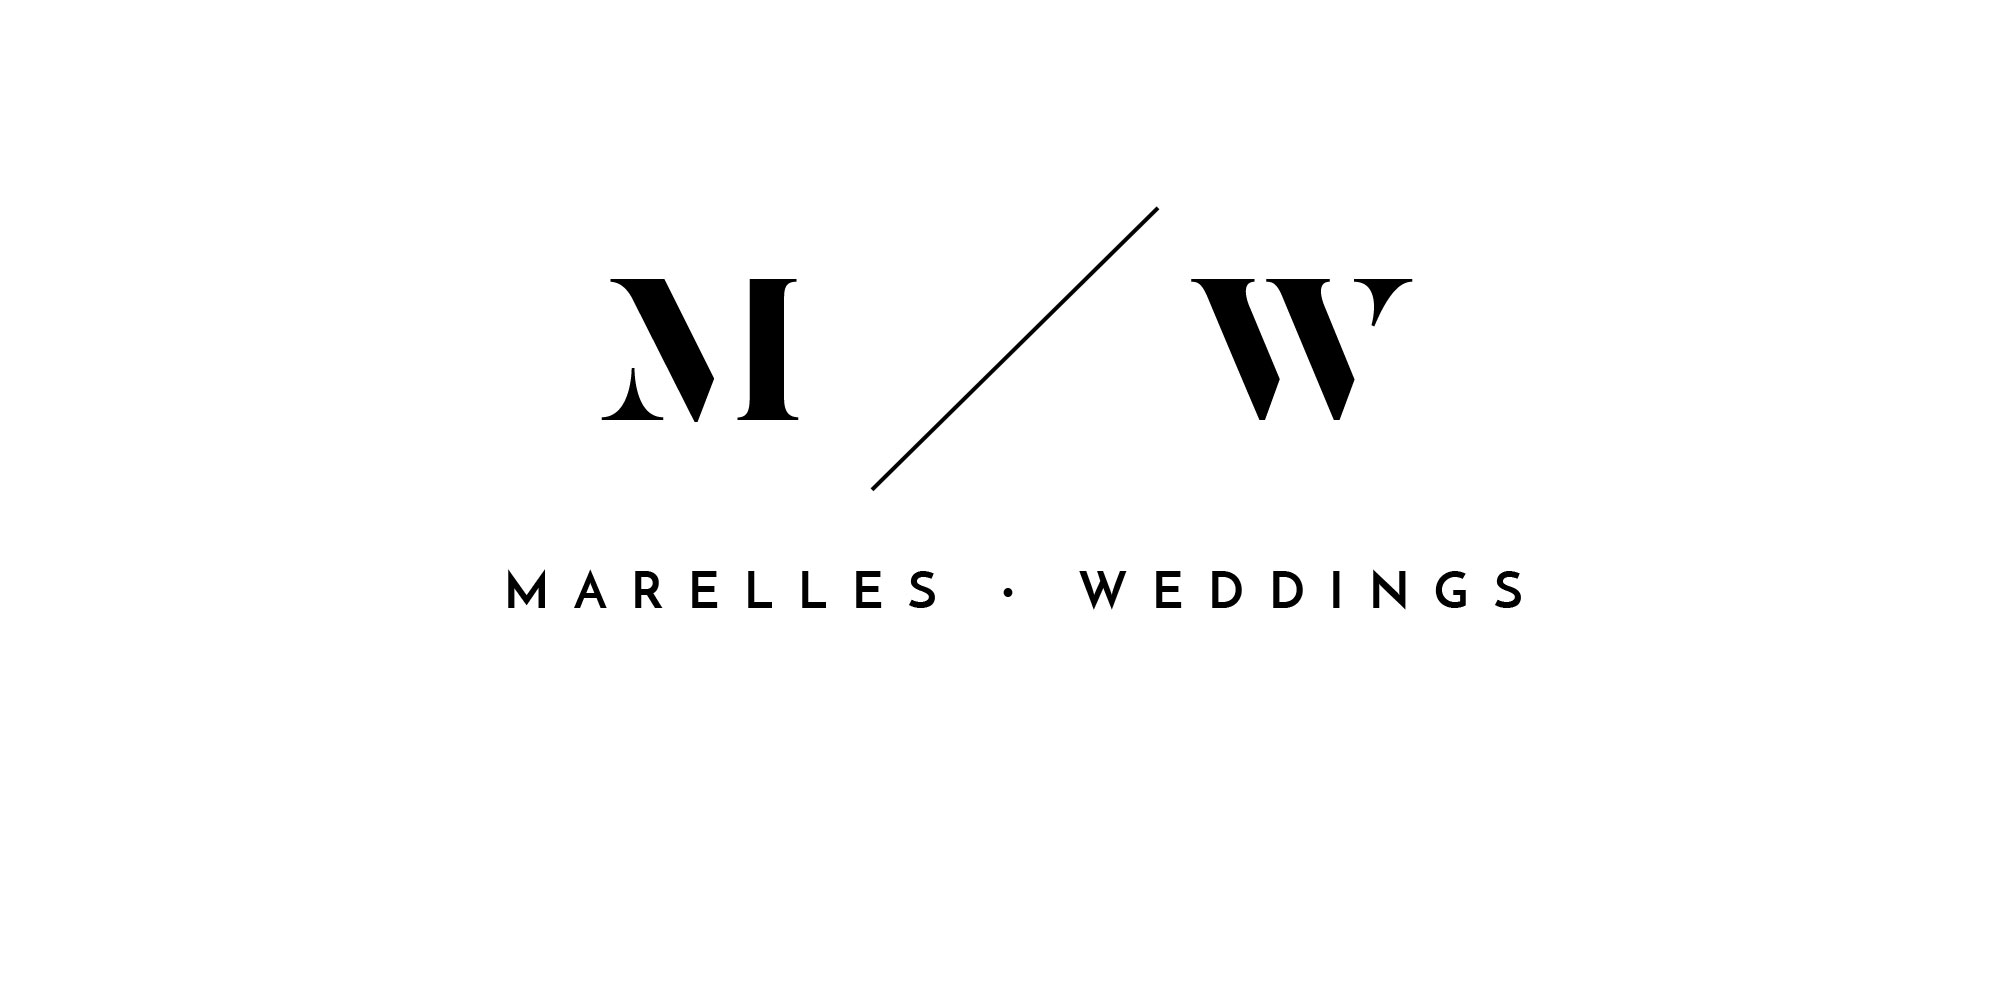 MARELLES WEDDINGS